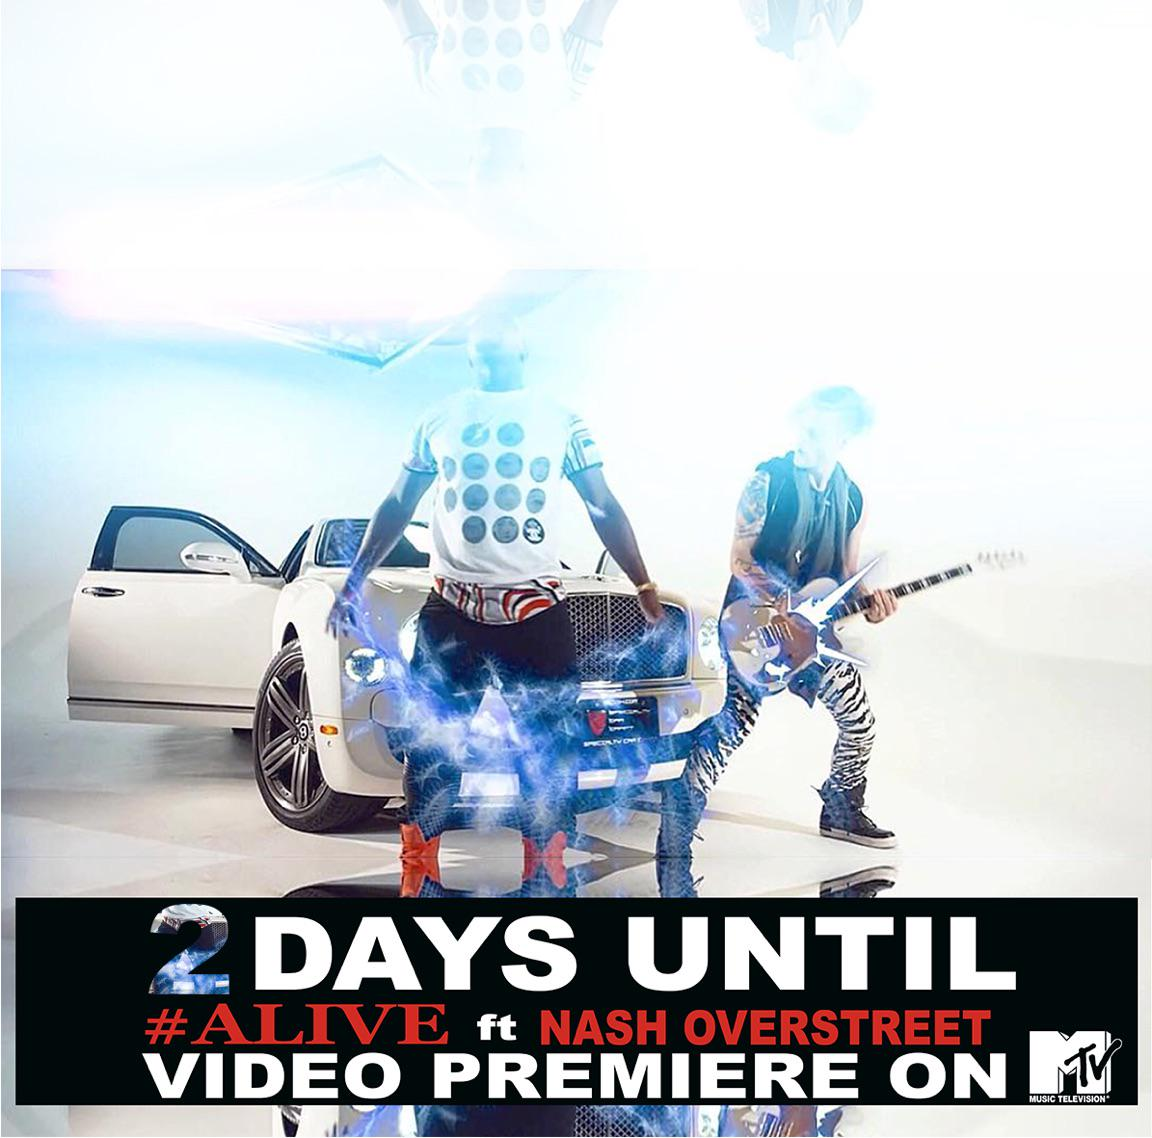 Catch my music video for #Alive on @MTV in 2 DAYS! Where you at, #iNation? #IyazIsBack @NashOverstreet #HotChelleRae http://t.co/gfqxgjqUeV